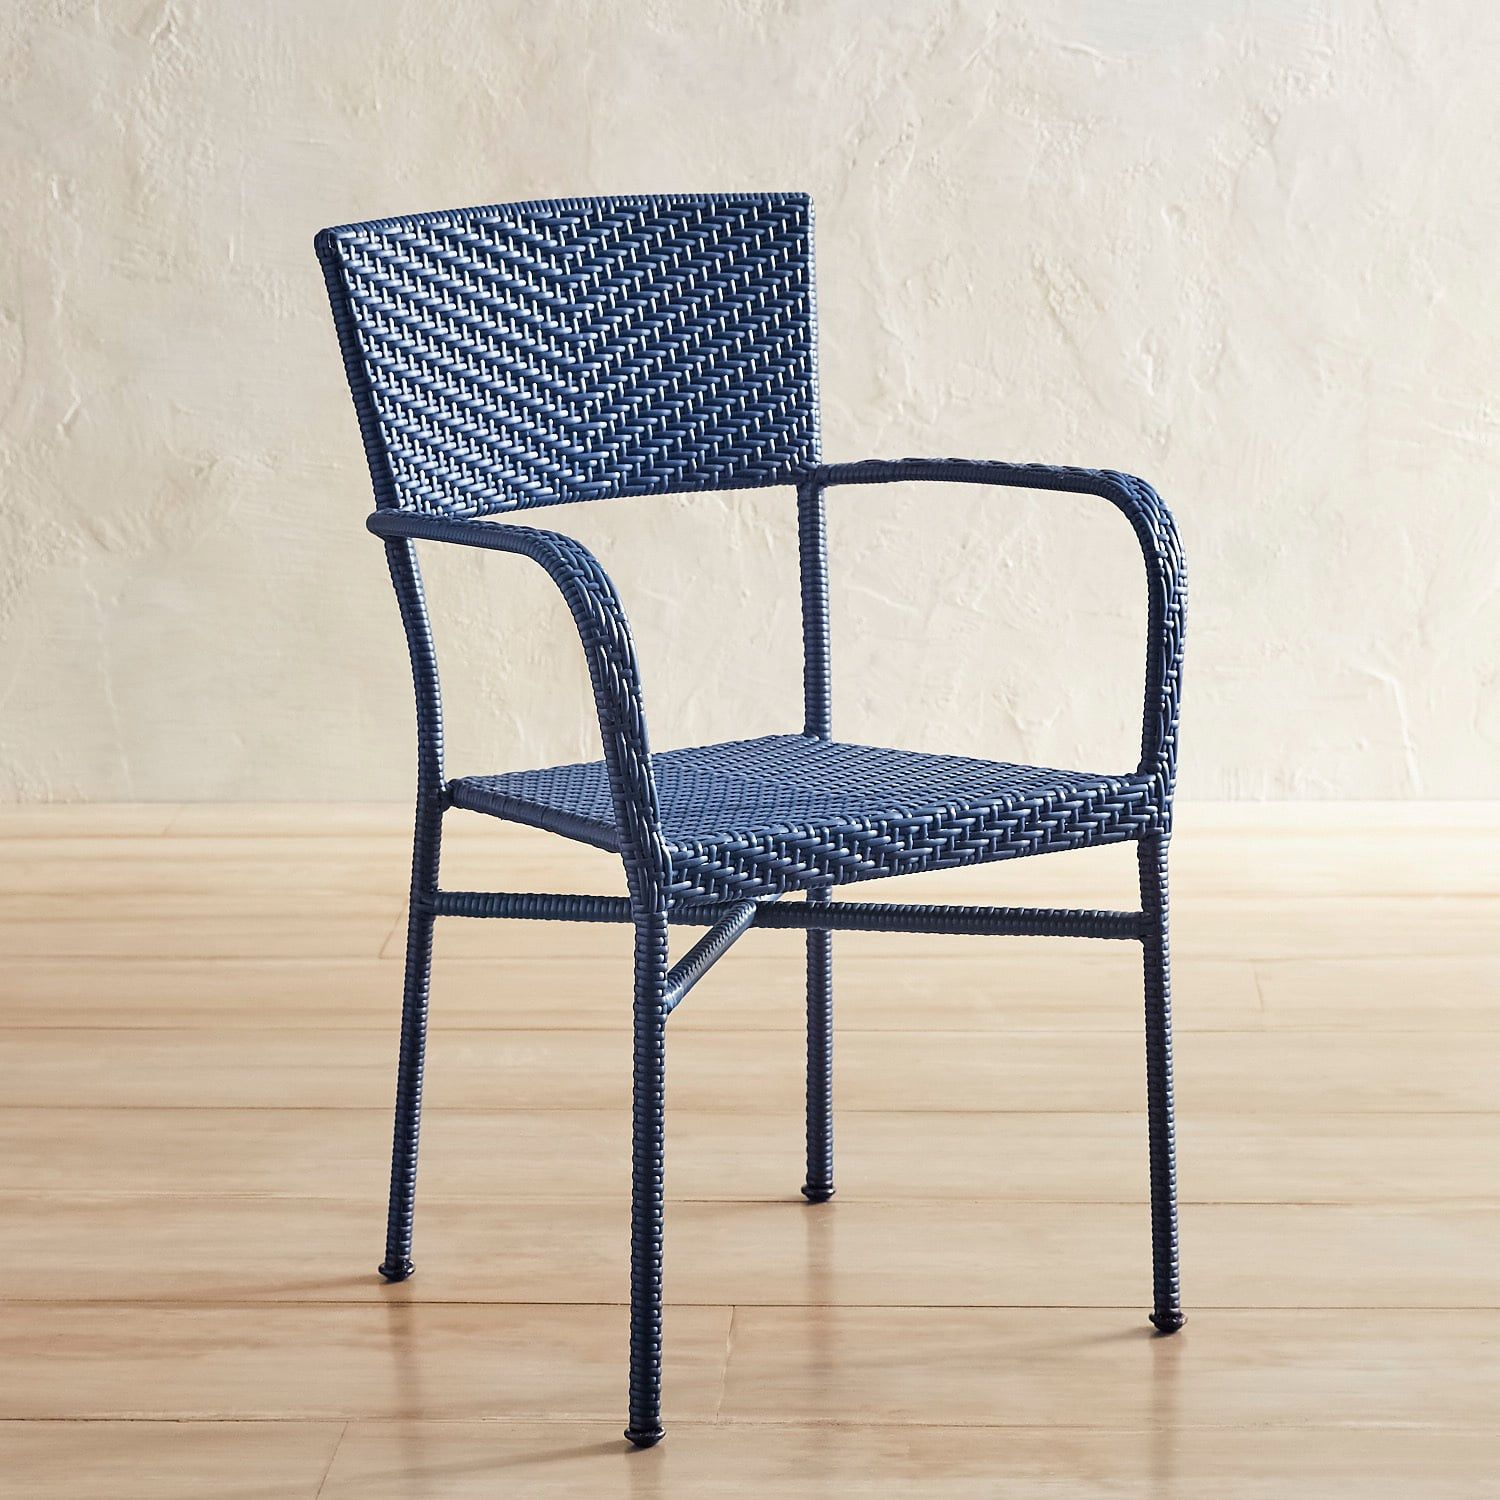 Del Rey Navy Stacking Chair | Outdoor dining chairs ...